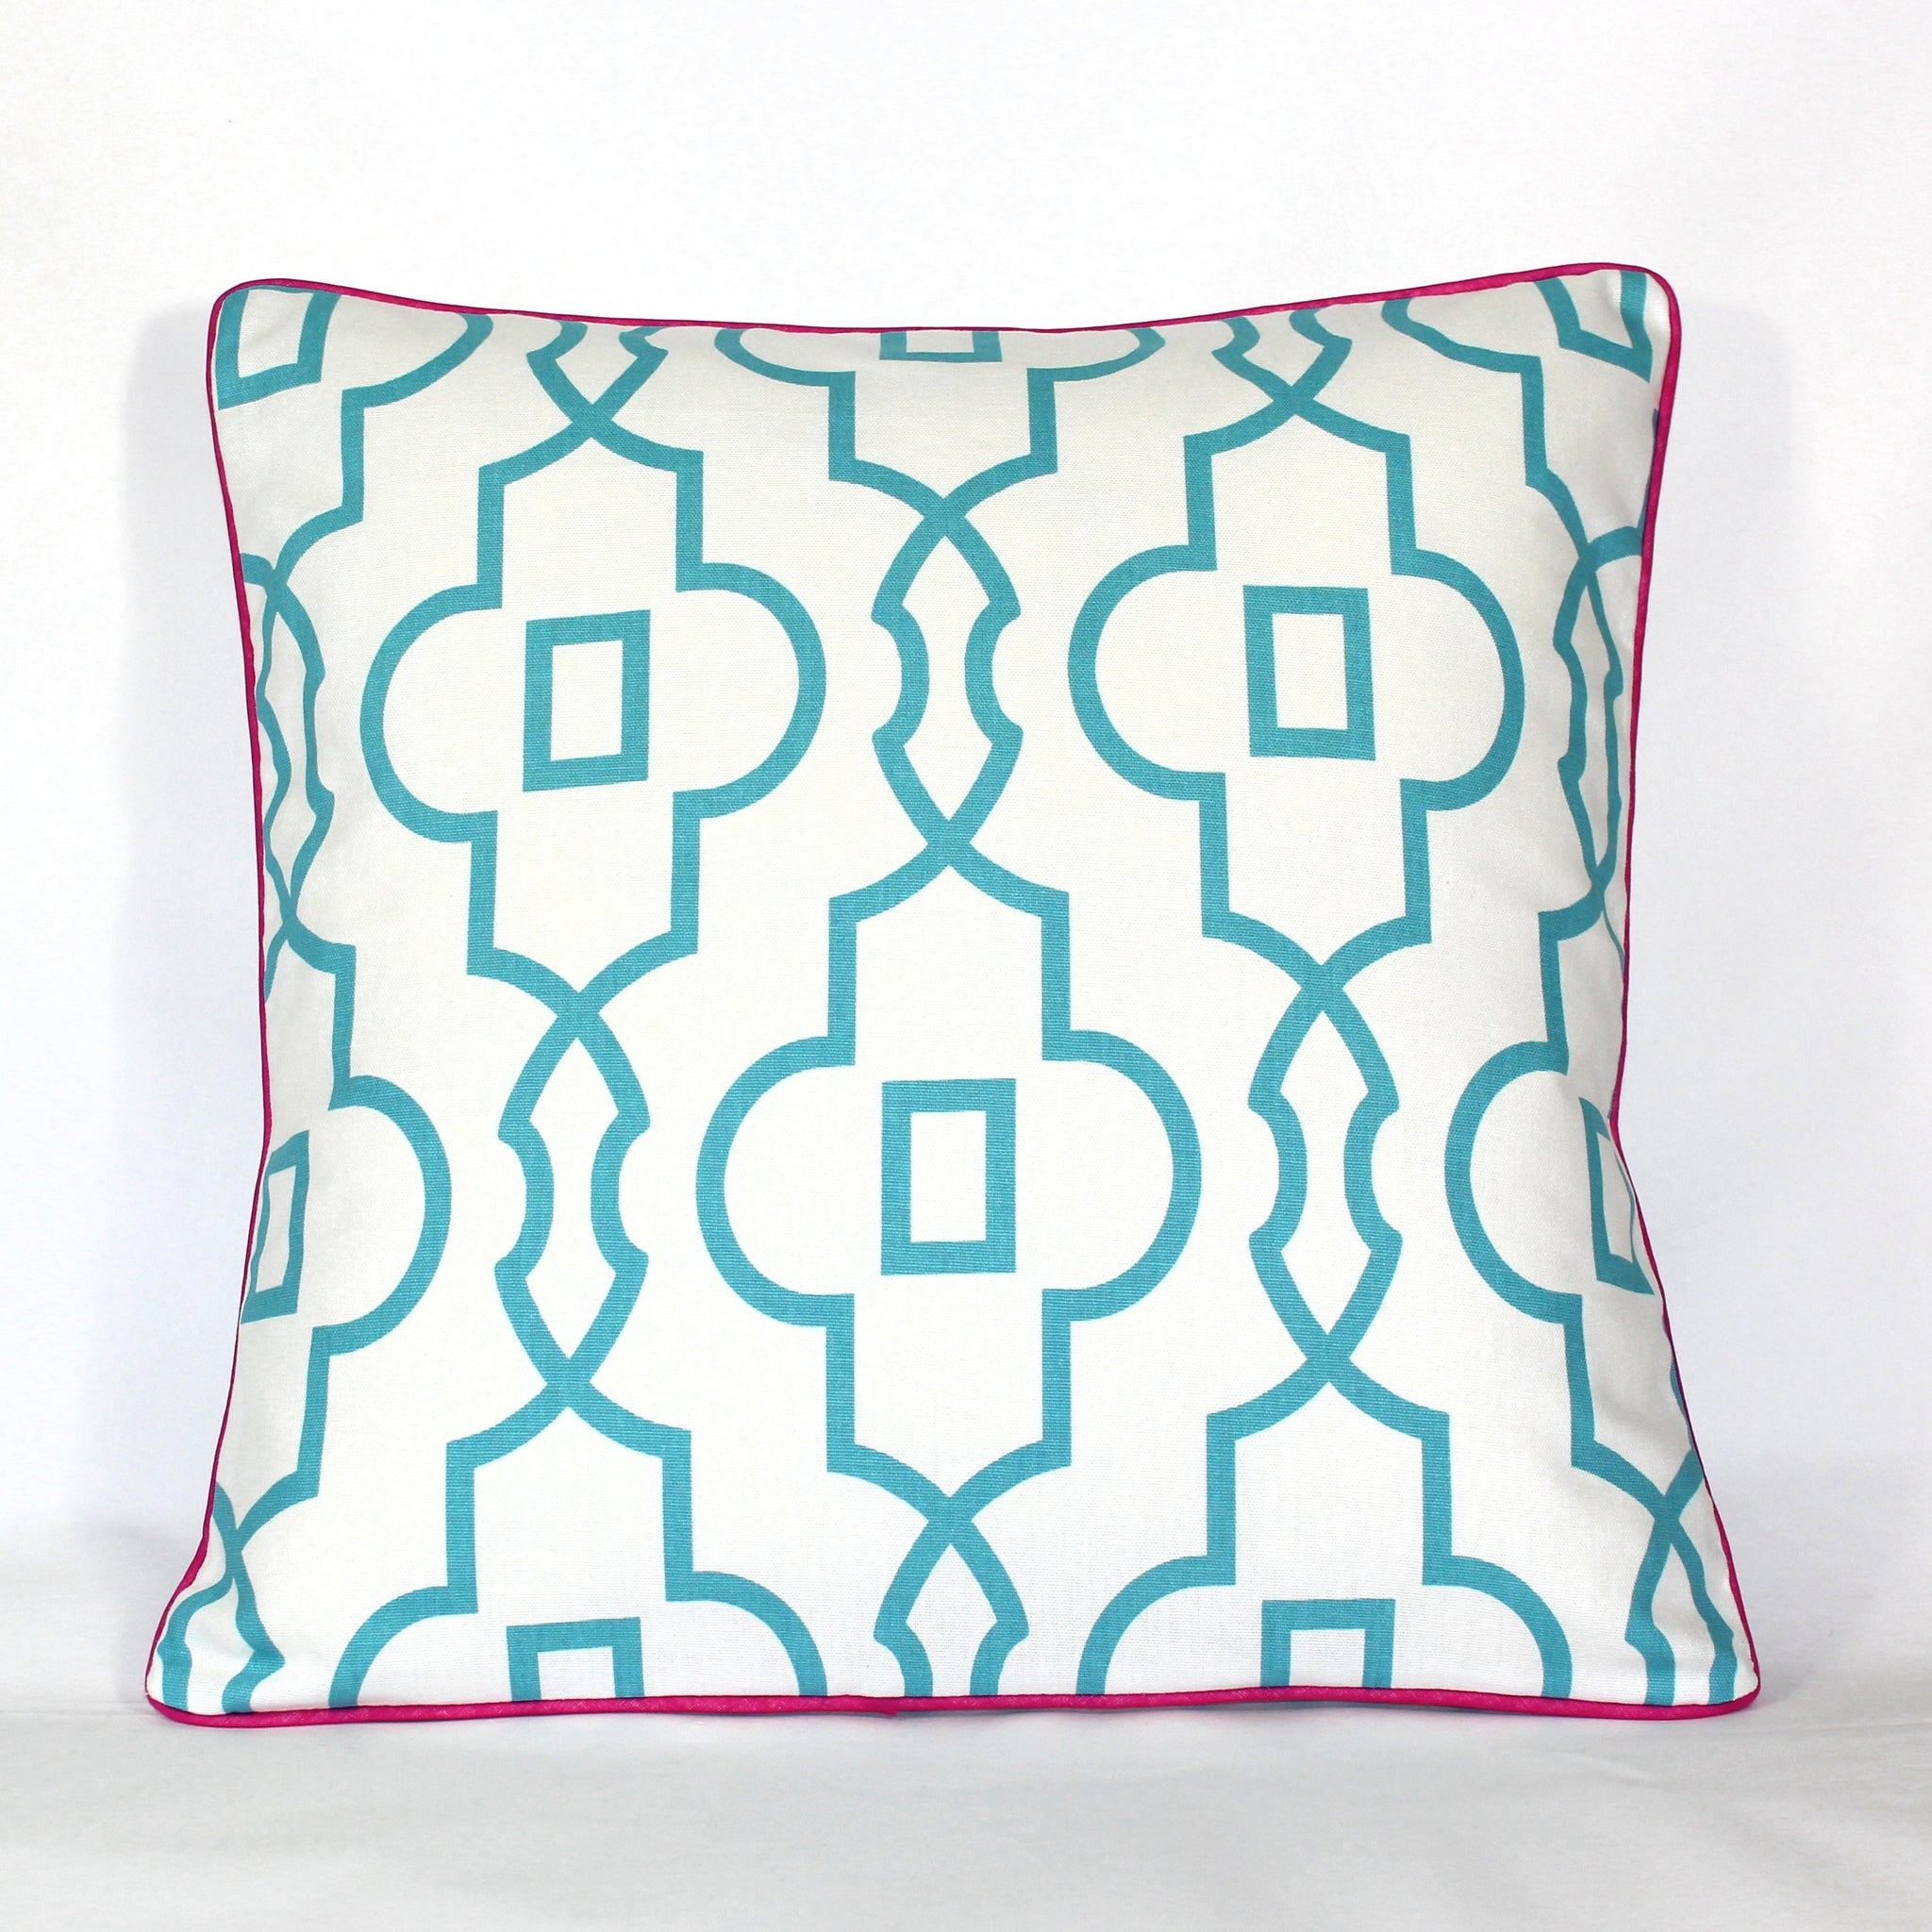 Cushion - Palm Beach Trellis Pink - 50 x 50 cm